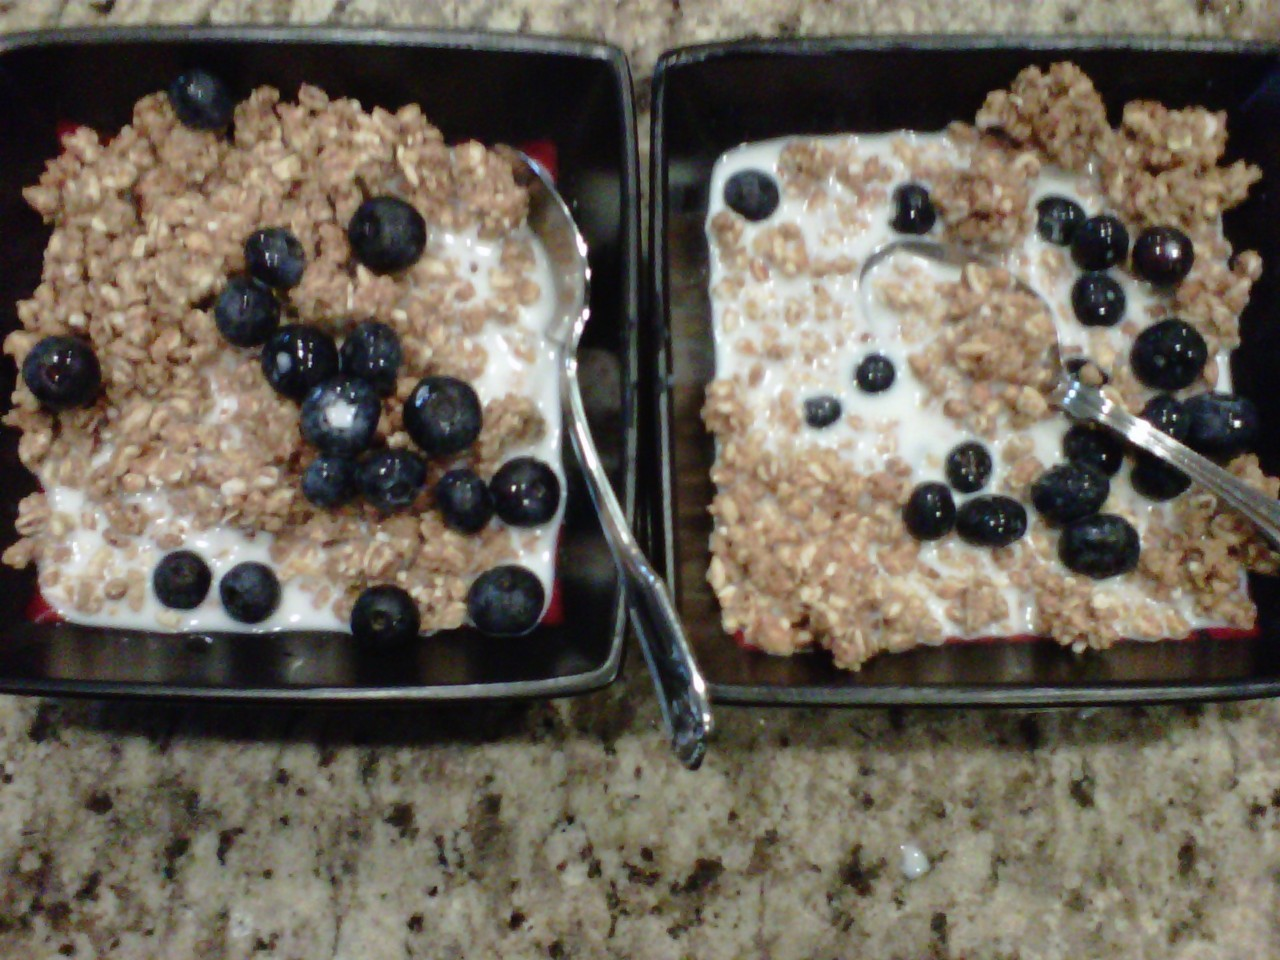 My breakfast (with a friend) - Kashi with organic fresh blueberries- LL